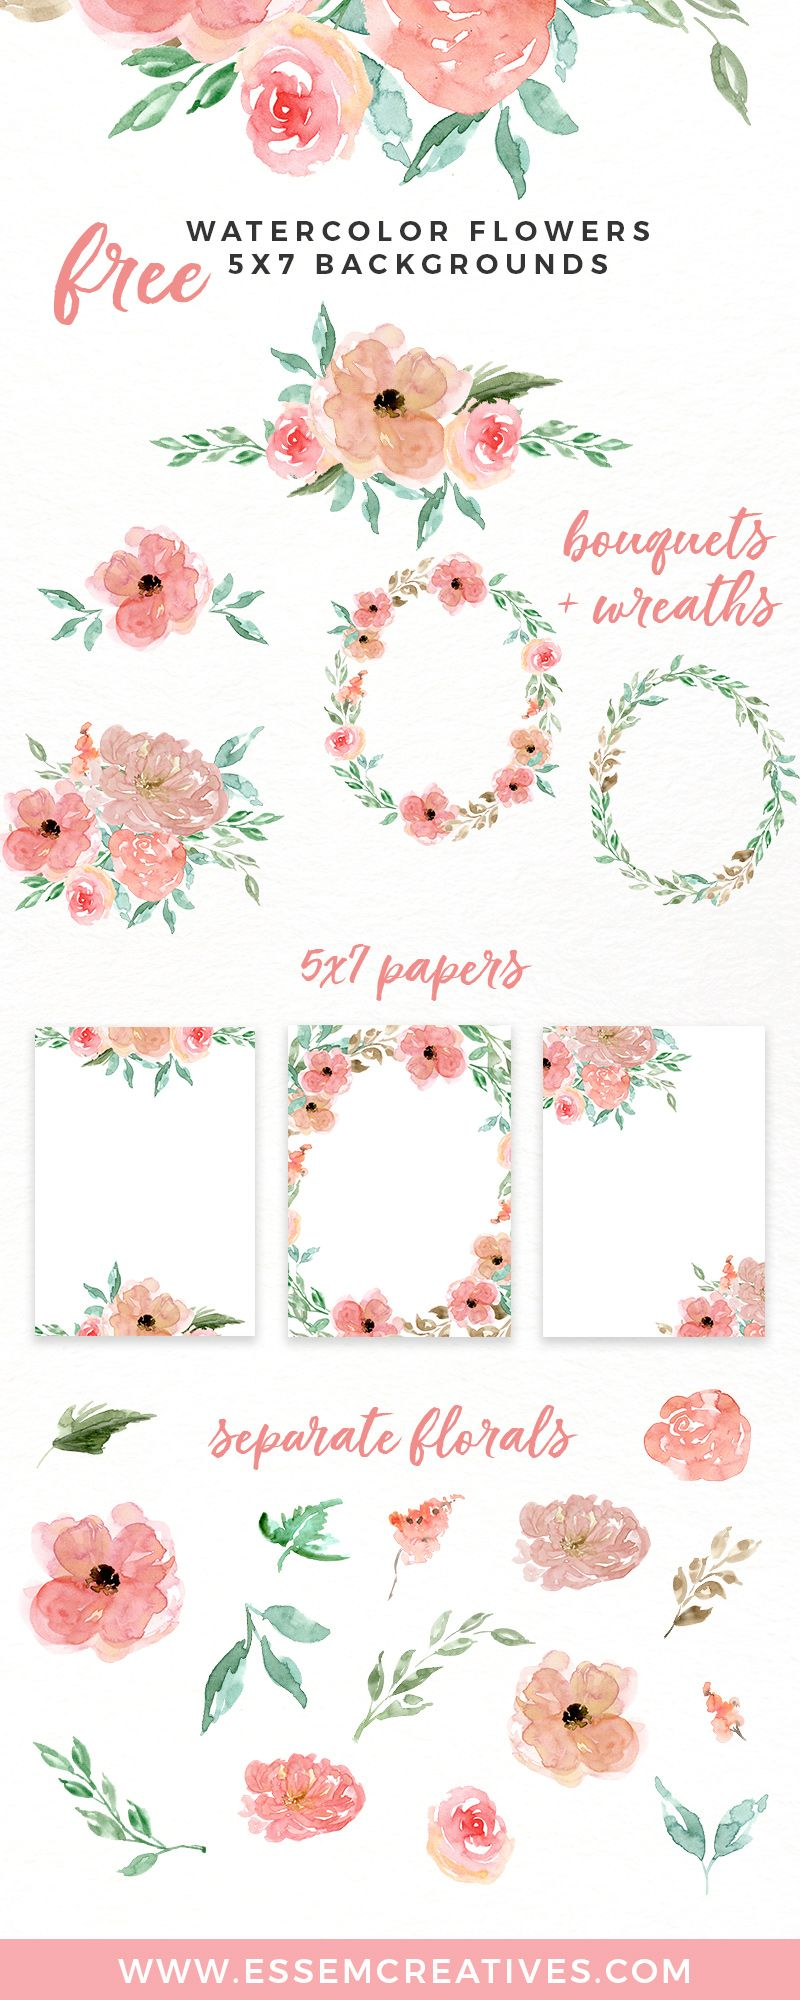 Nifty image for watercolor floral border paper printable